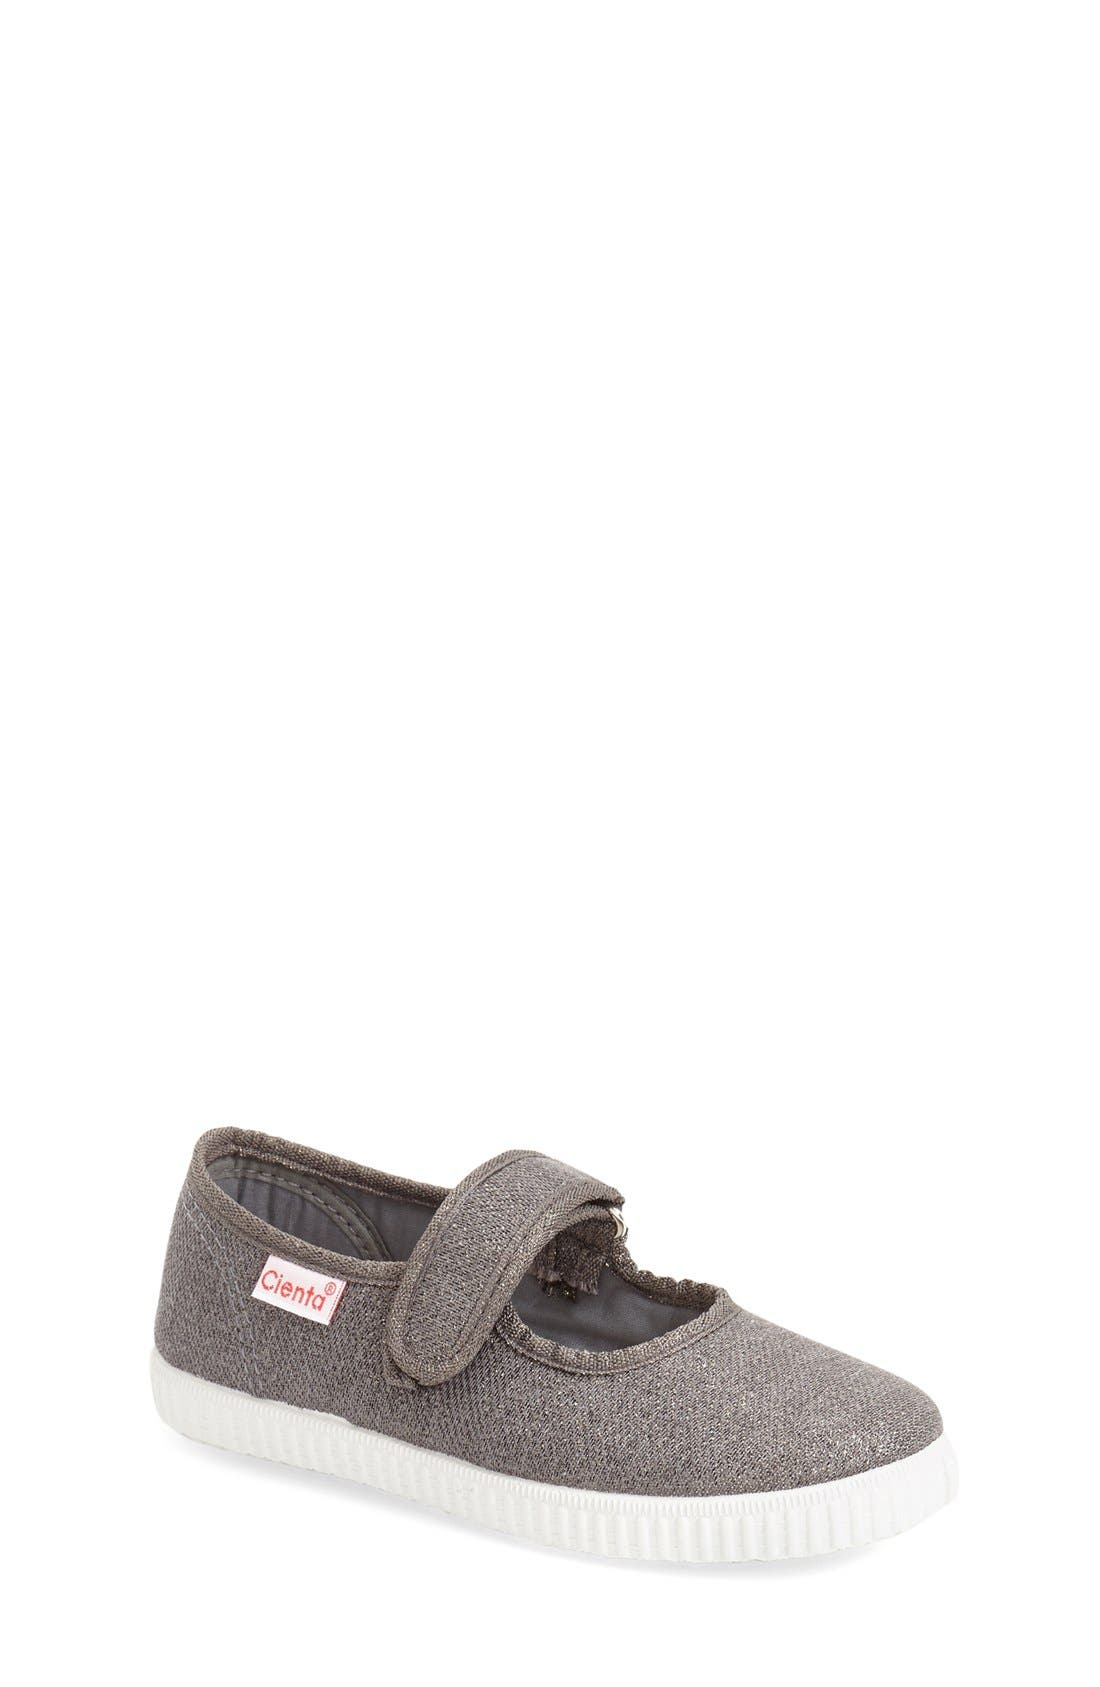 Cienta Mary Jane Sneaker (Walker, Toddler & Little Kid)